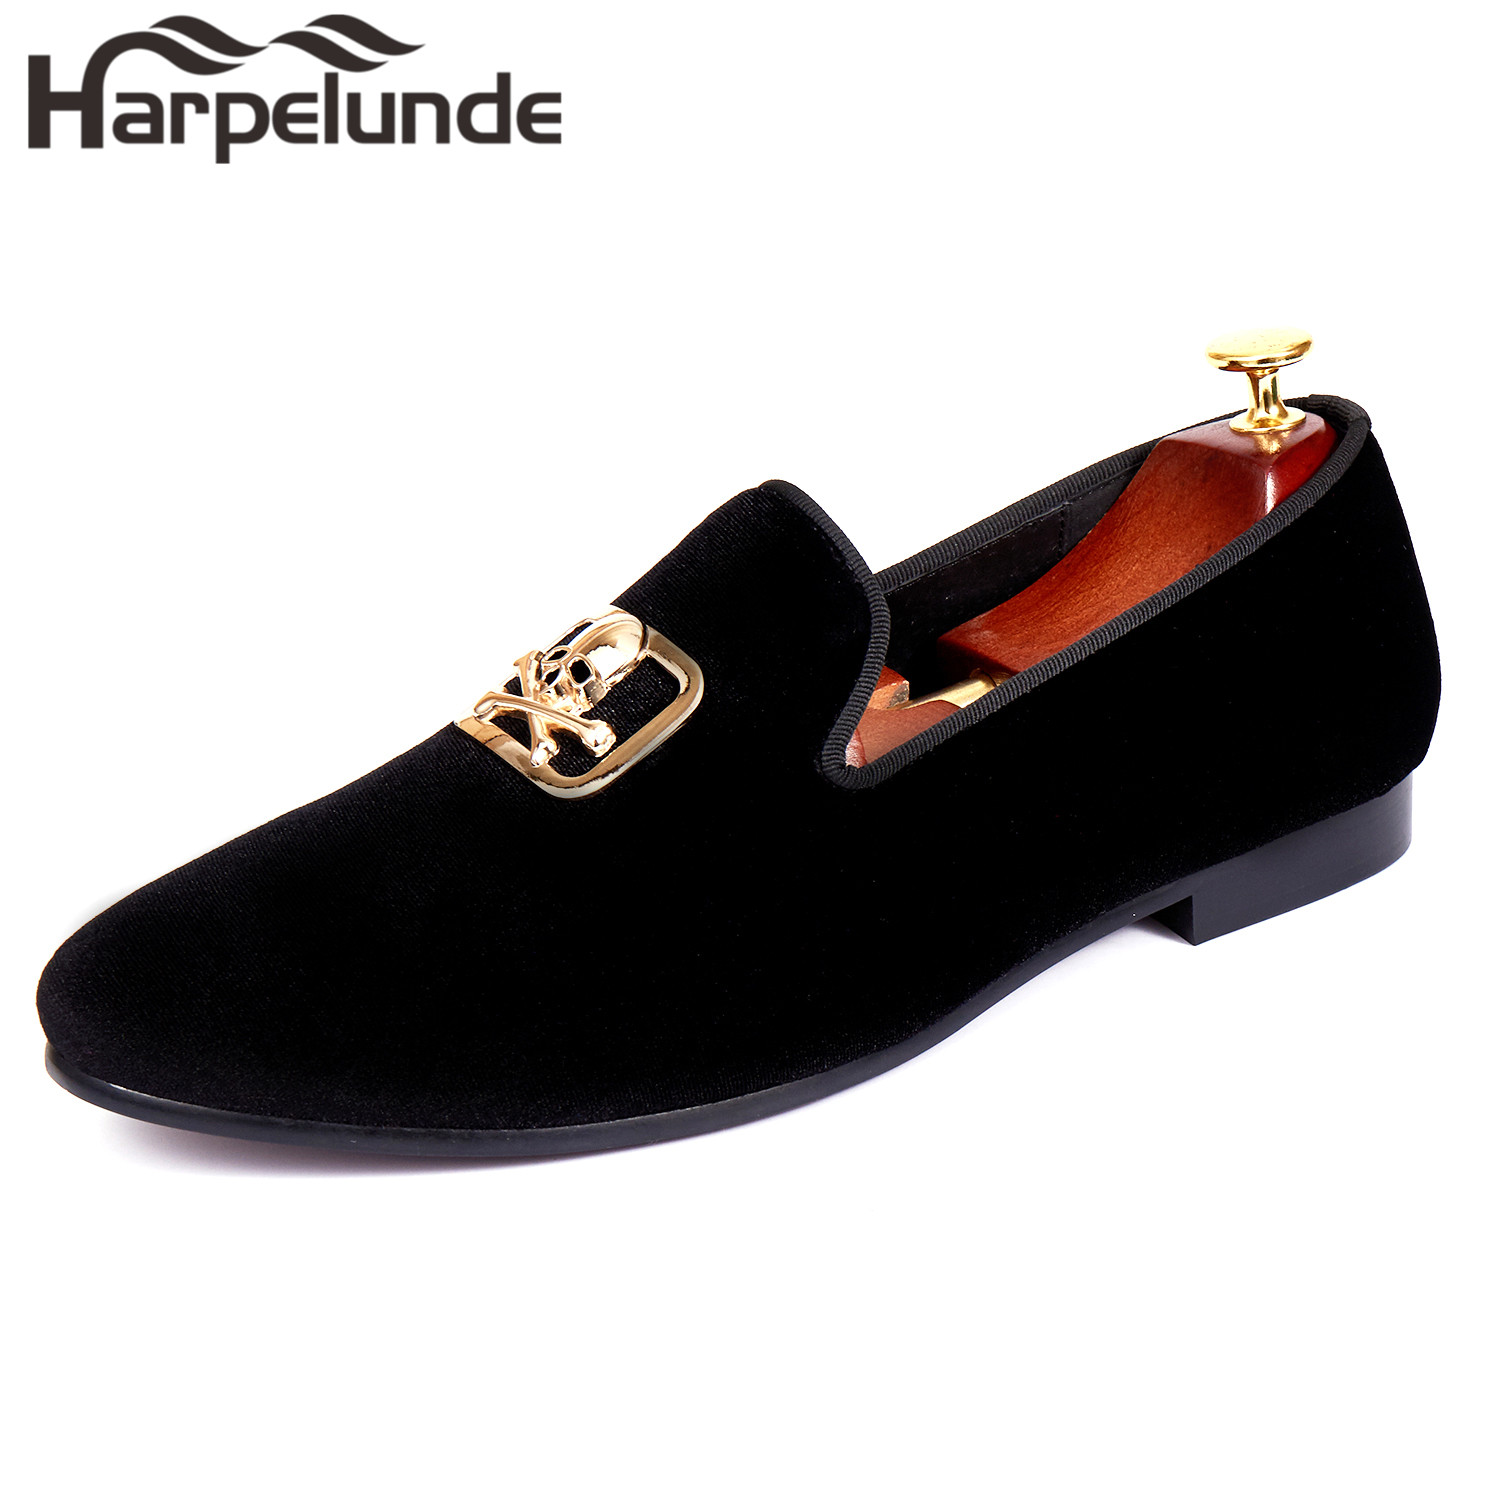 Harpelunde Slip On Dress Wedding Shoes For Men Skull Buckle Black Velvet Loafers Size 6 14 in Formal Shoes from Shoes